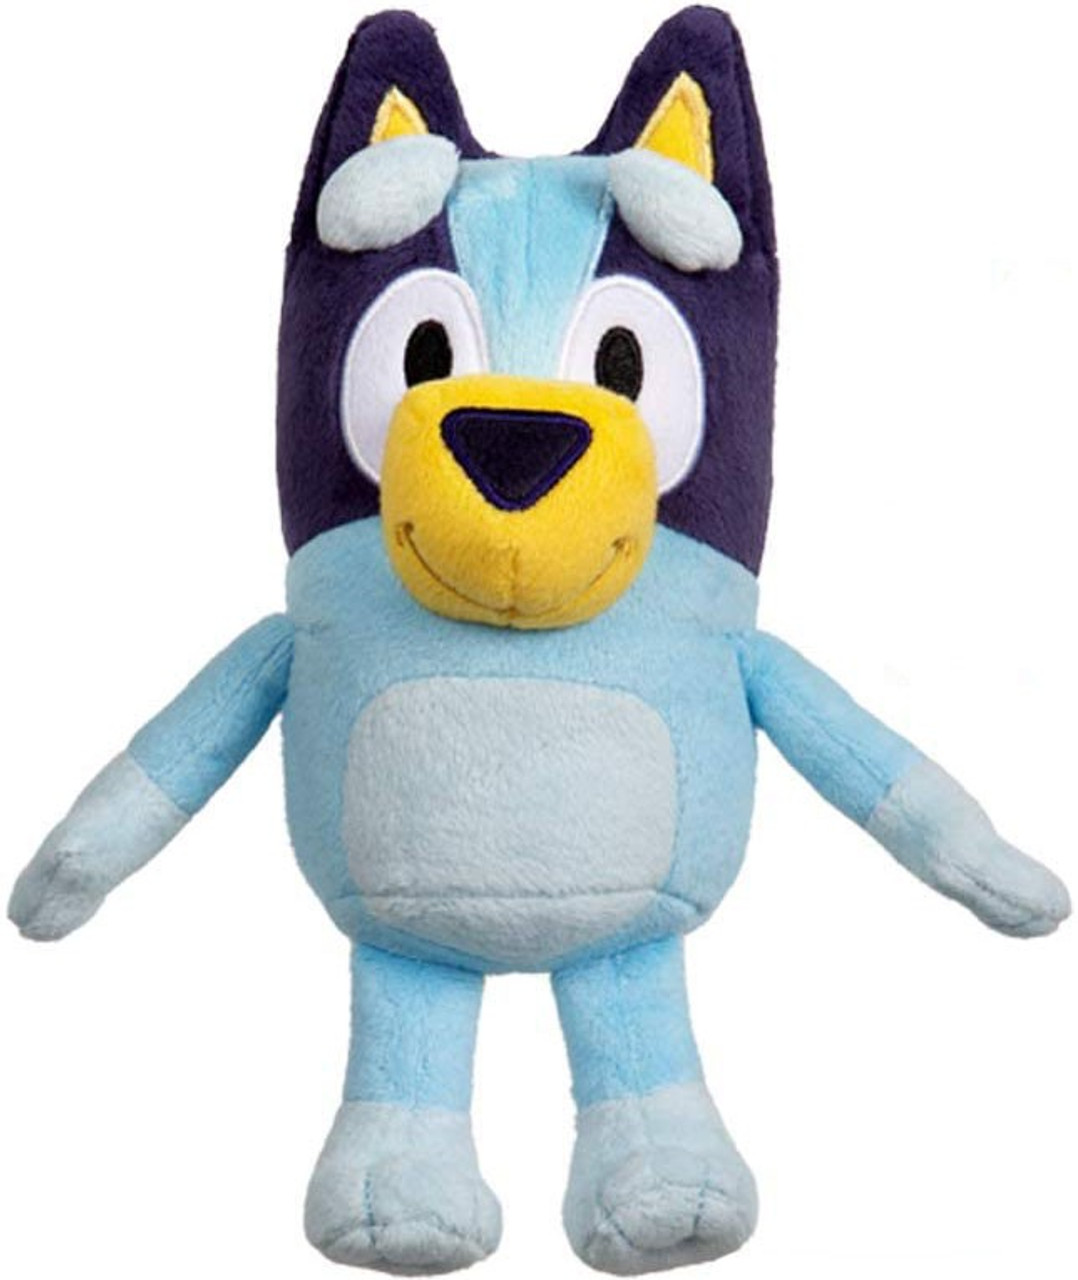 USA SELLER REAL GENUINE WITH TAG BLUEY BLUEY TV CARTOON 8-INCH PLUSH TOY